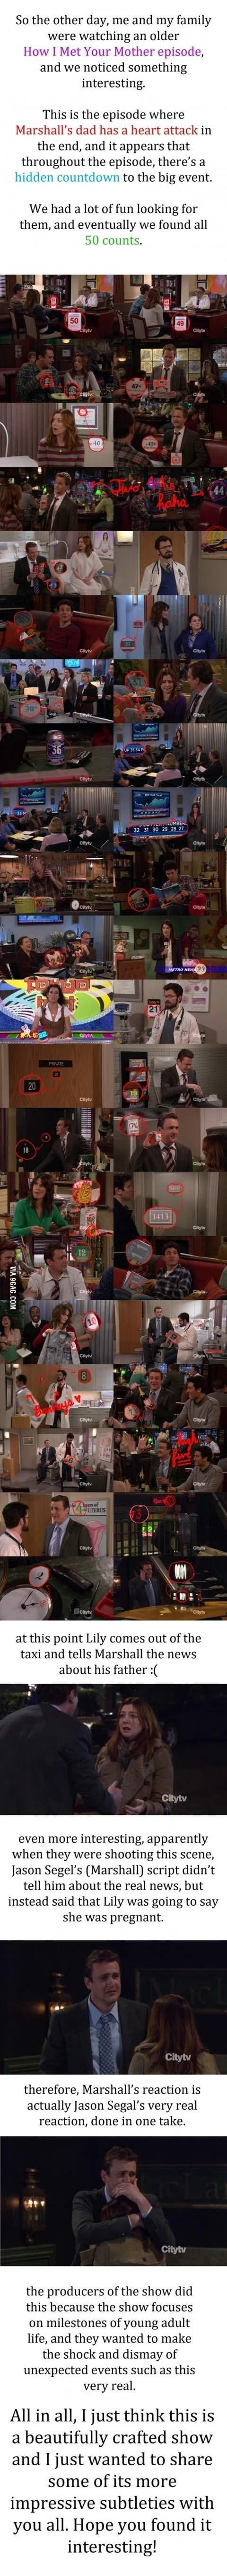 Hidden Countdown in 'How I Met Your Mother'